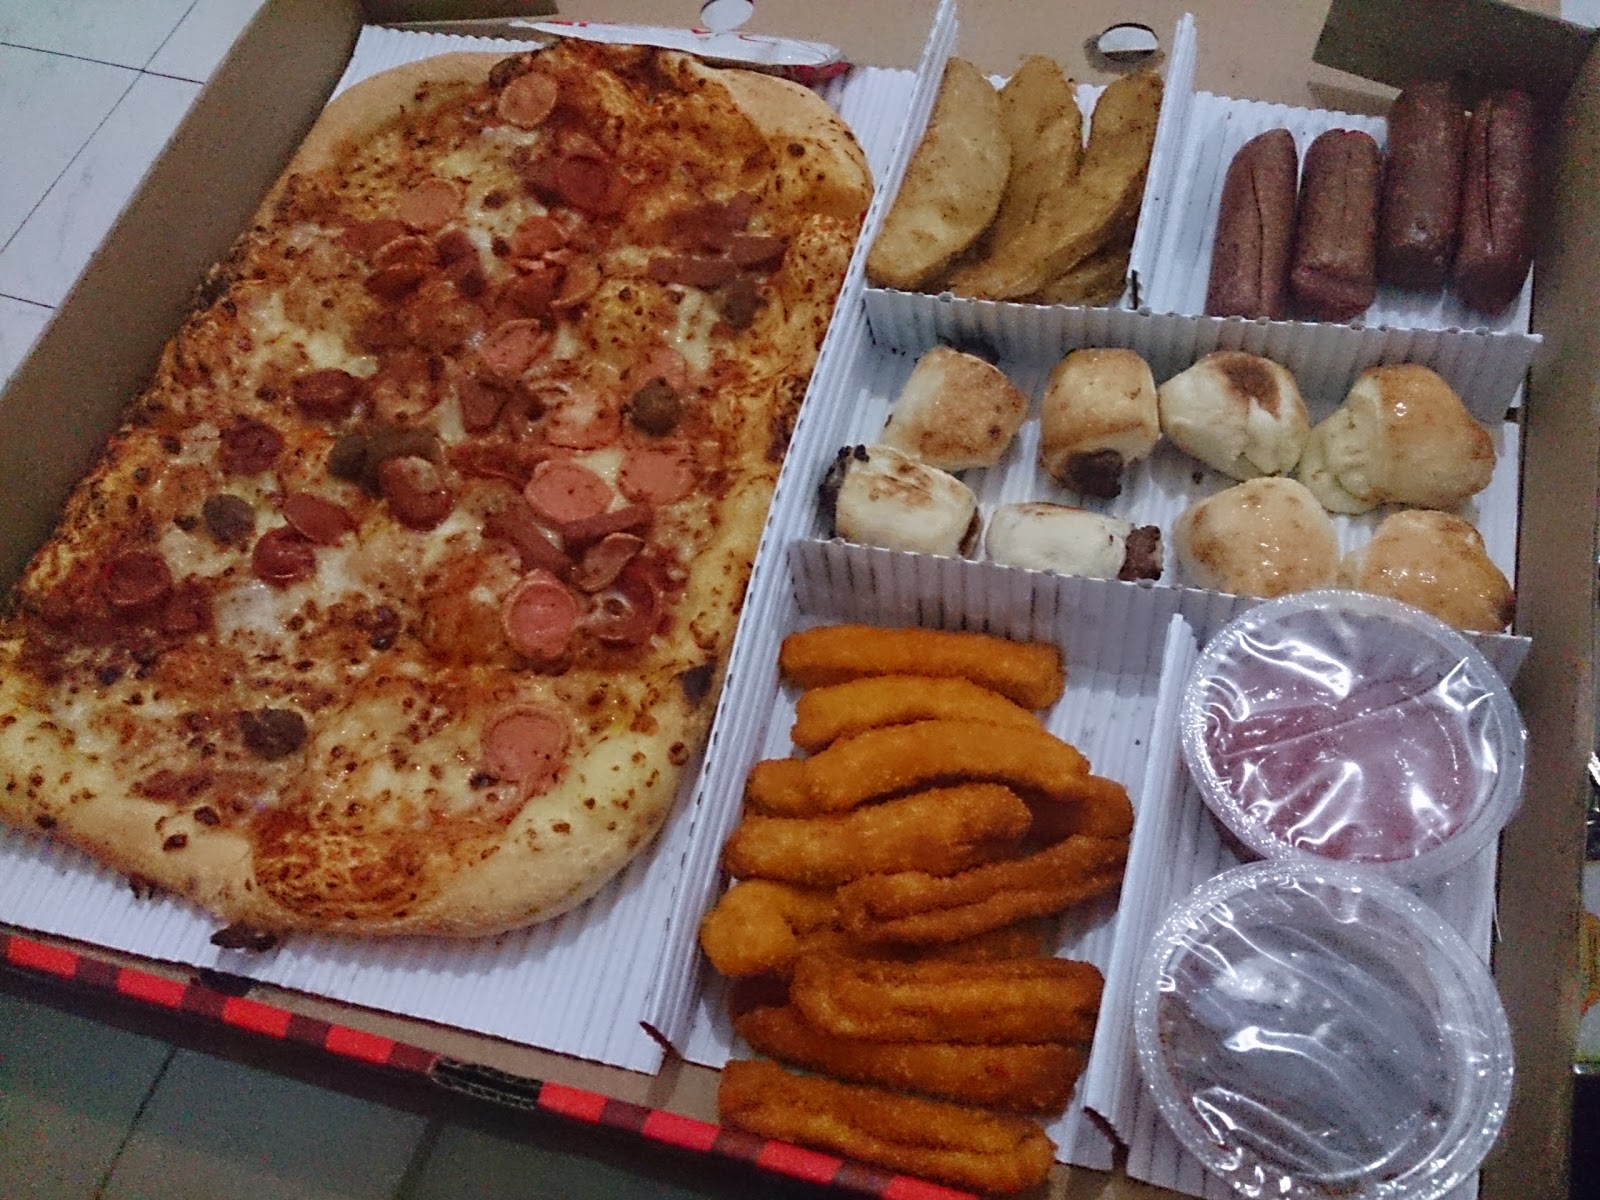 Pizza Hut Delivery Indonesia Welcome to Pizza Hut Delivery Indonesia Our handmade pizza are created to deliver happiness to you in 30 minutes! Click to order now. insurancecompanies.cf